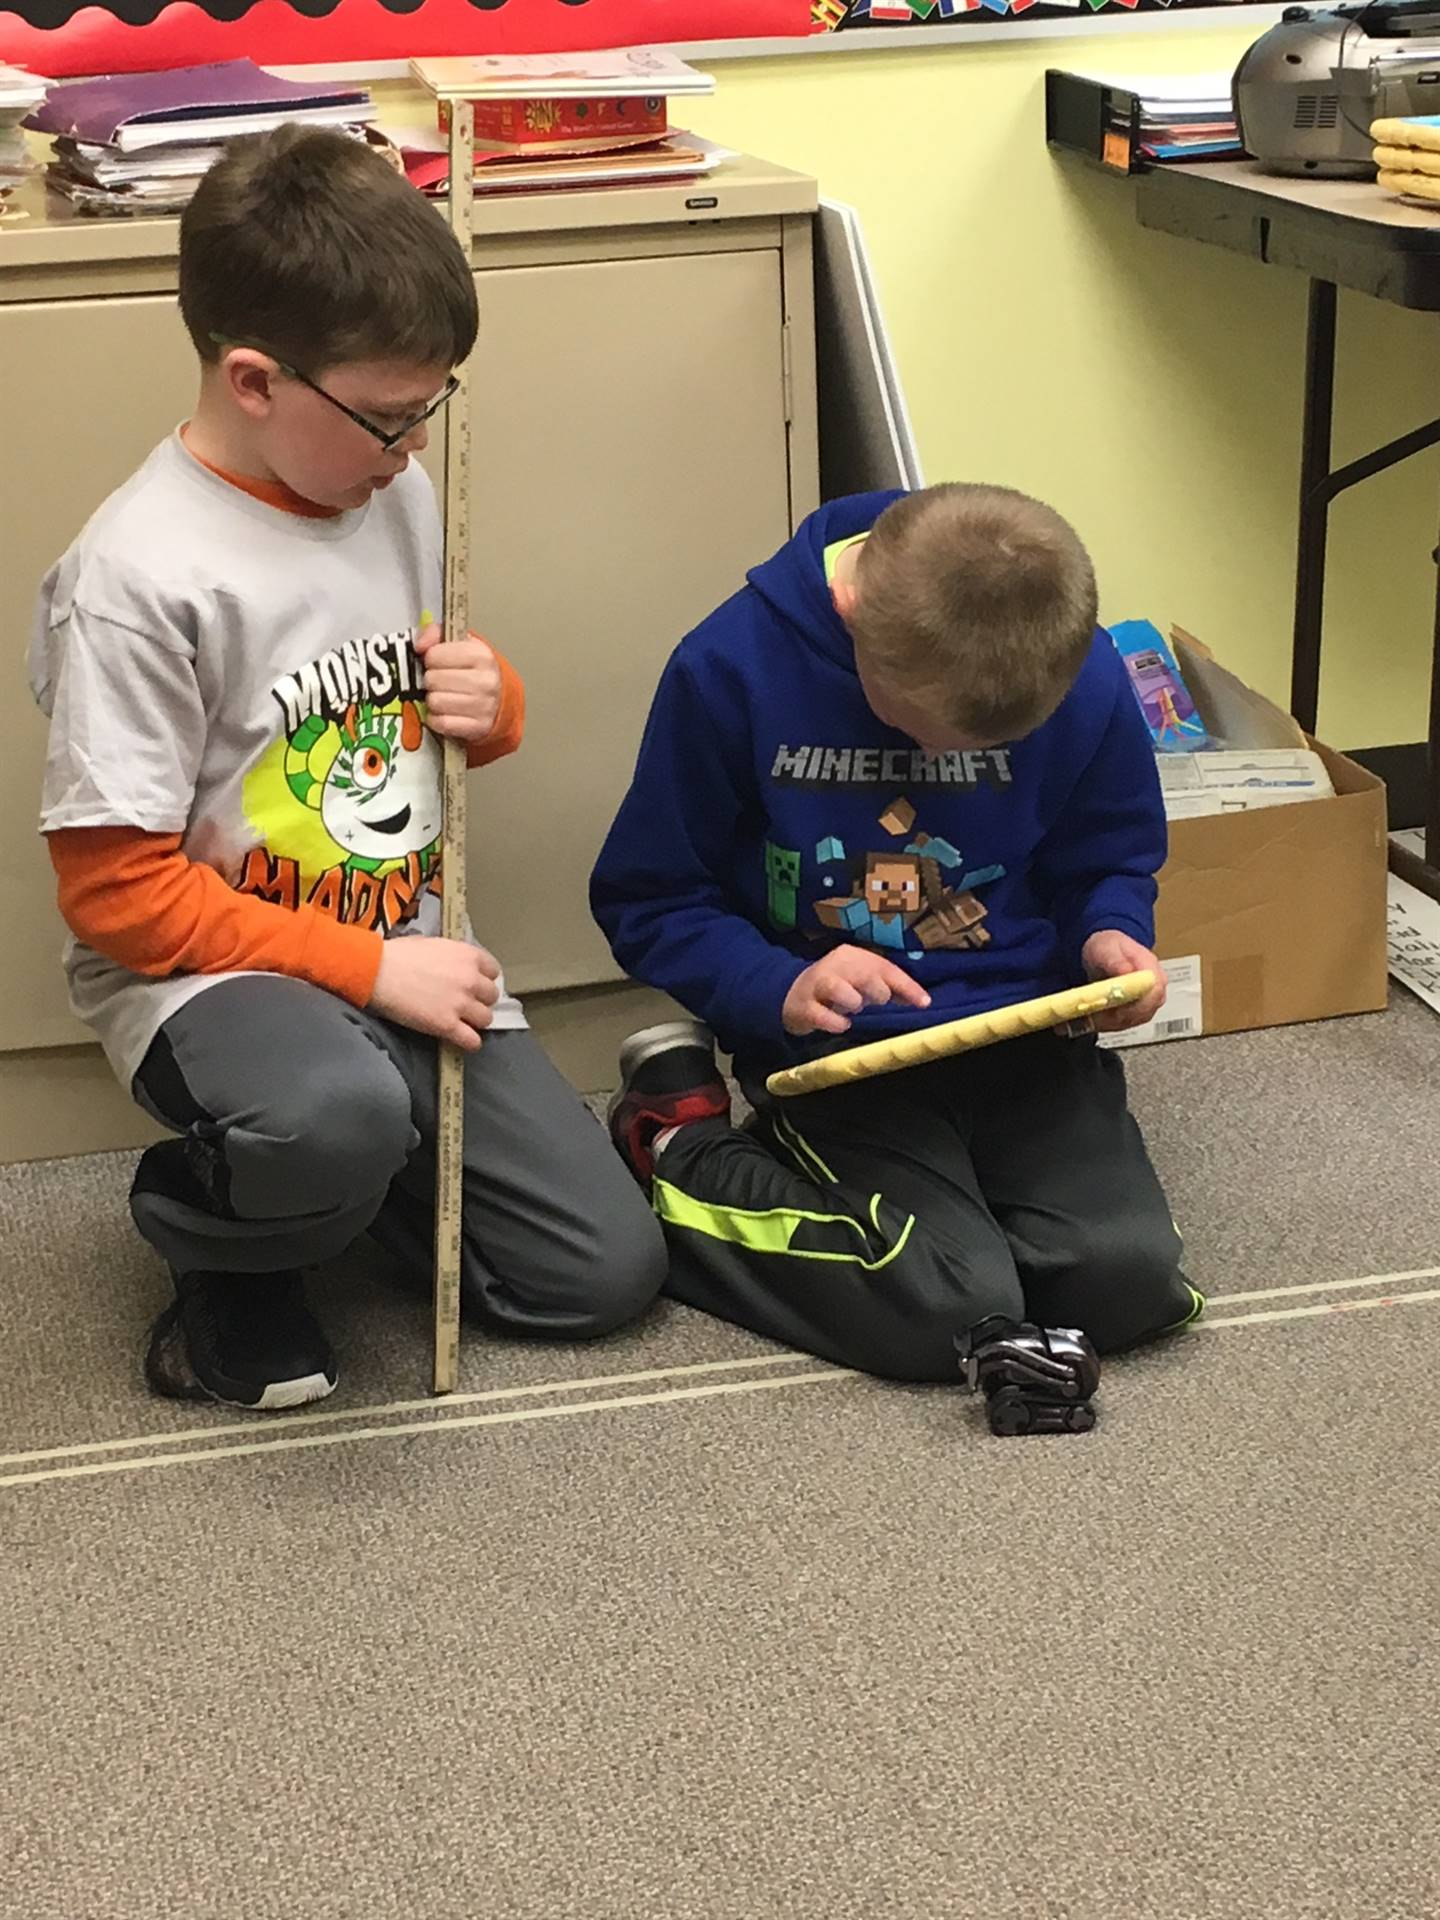 two students working with an iPad and a yard stick